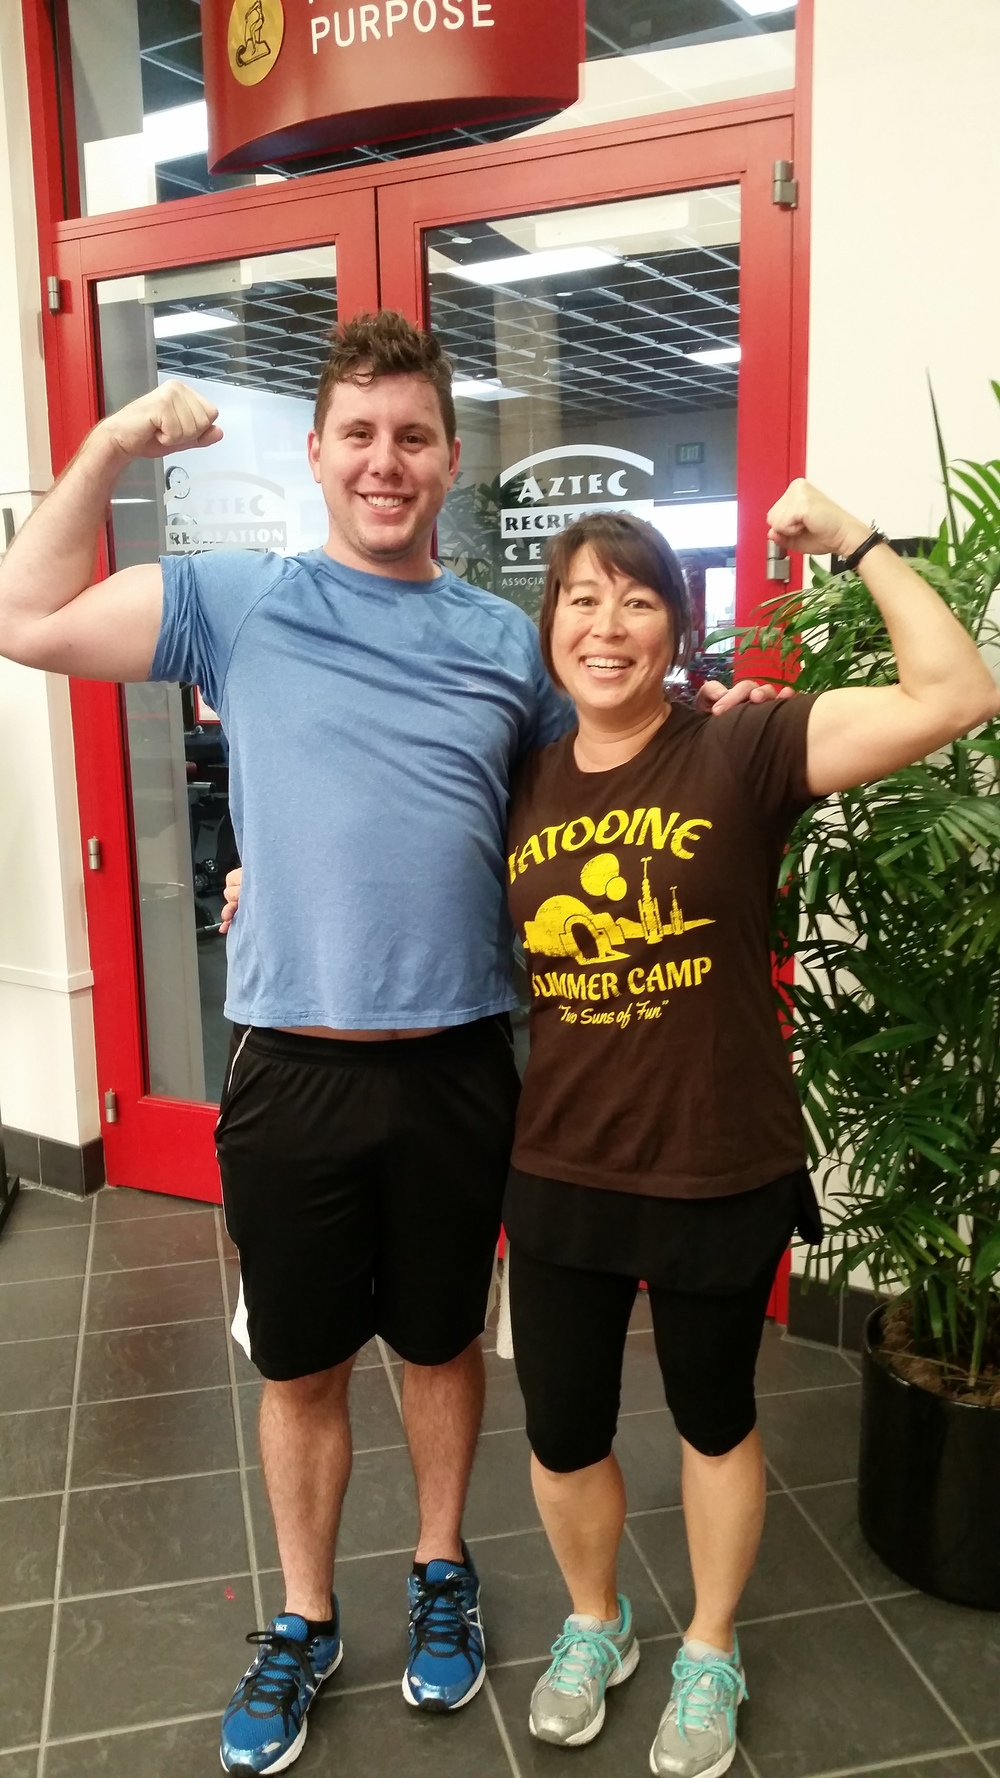 Personal training partners. Come for the guns and stay for the  Star Wars shirts!